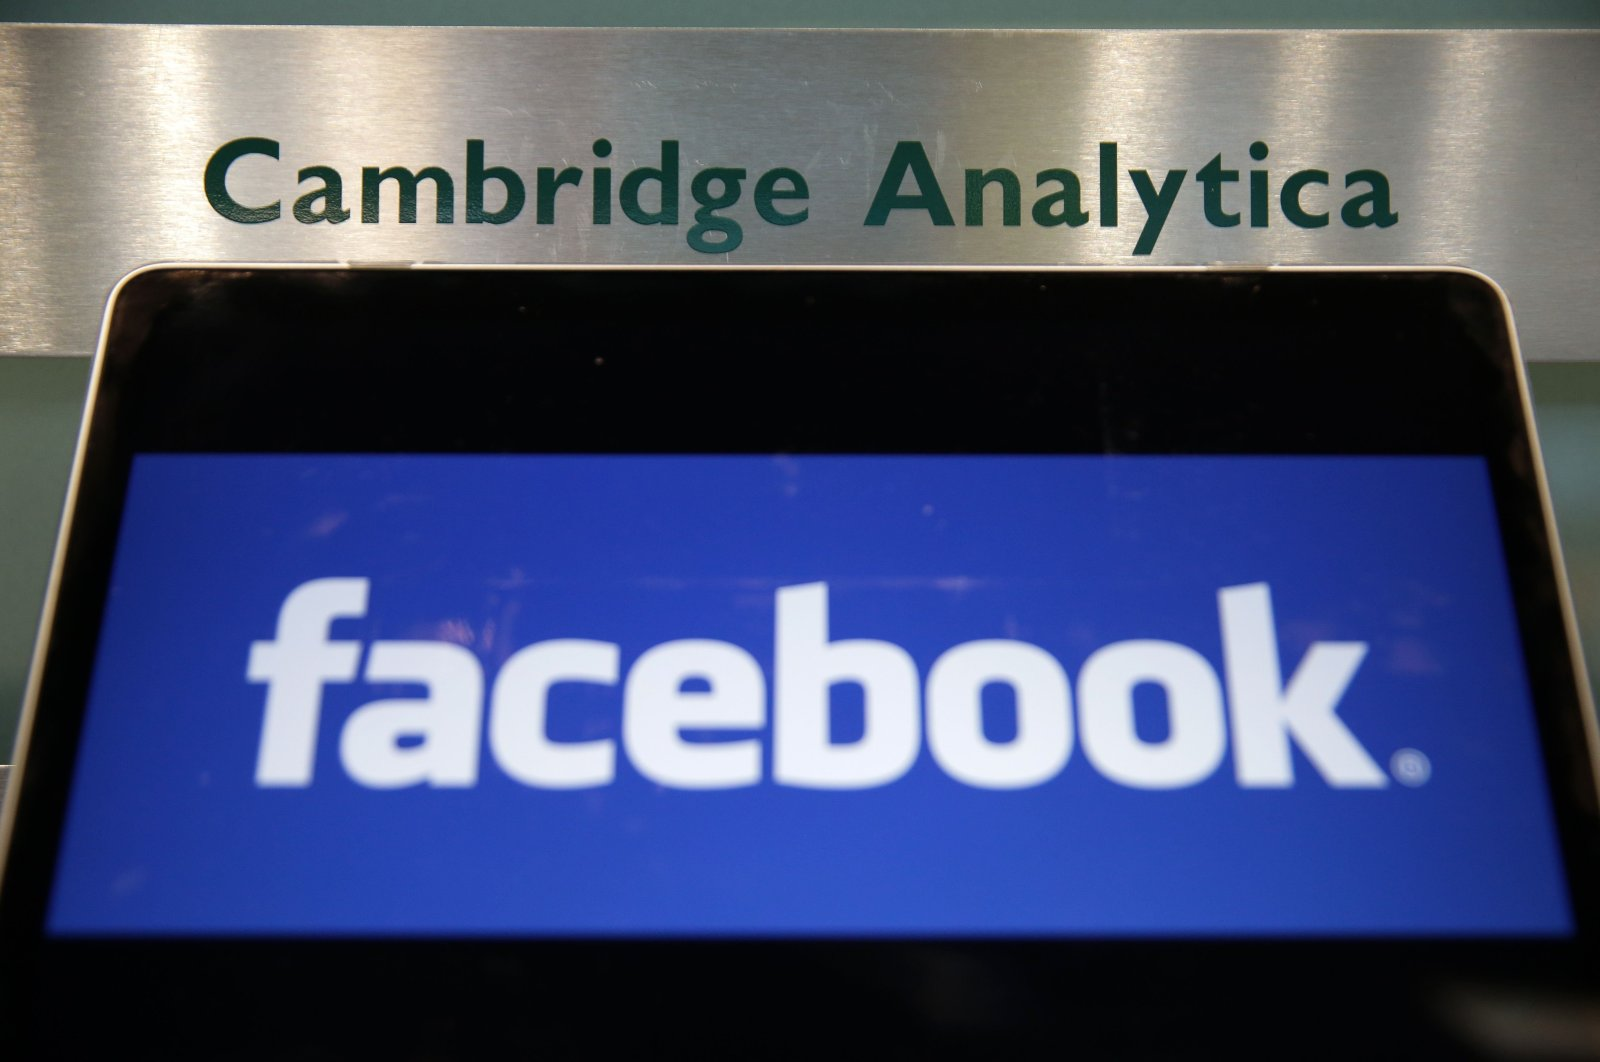 In this file photo, a laptop showing the Facebook logo is held alongside a Cambridge Analytica sign at the entrance to the building housing the offices of Cambridge Analytica in central London, U.K., March 21, 2018. (AFP Photo)